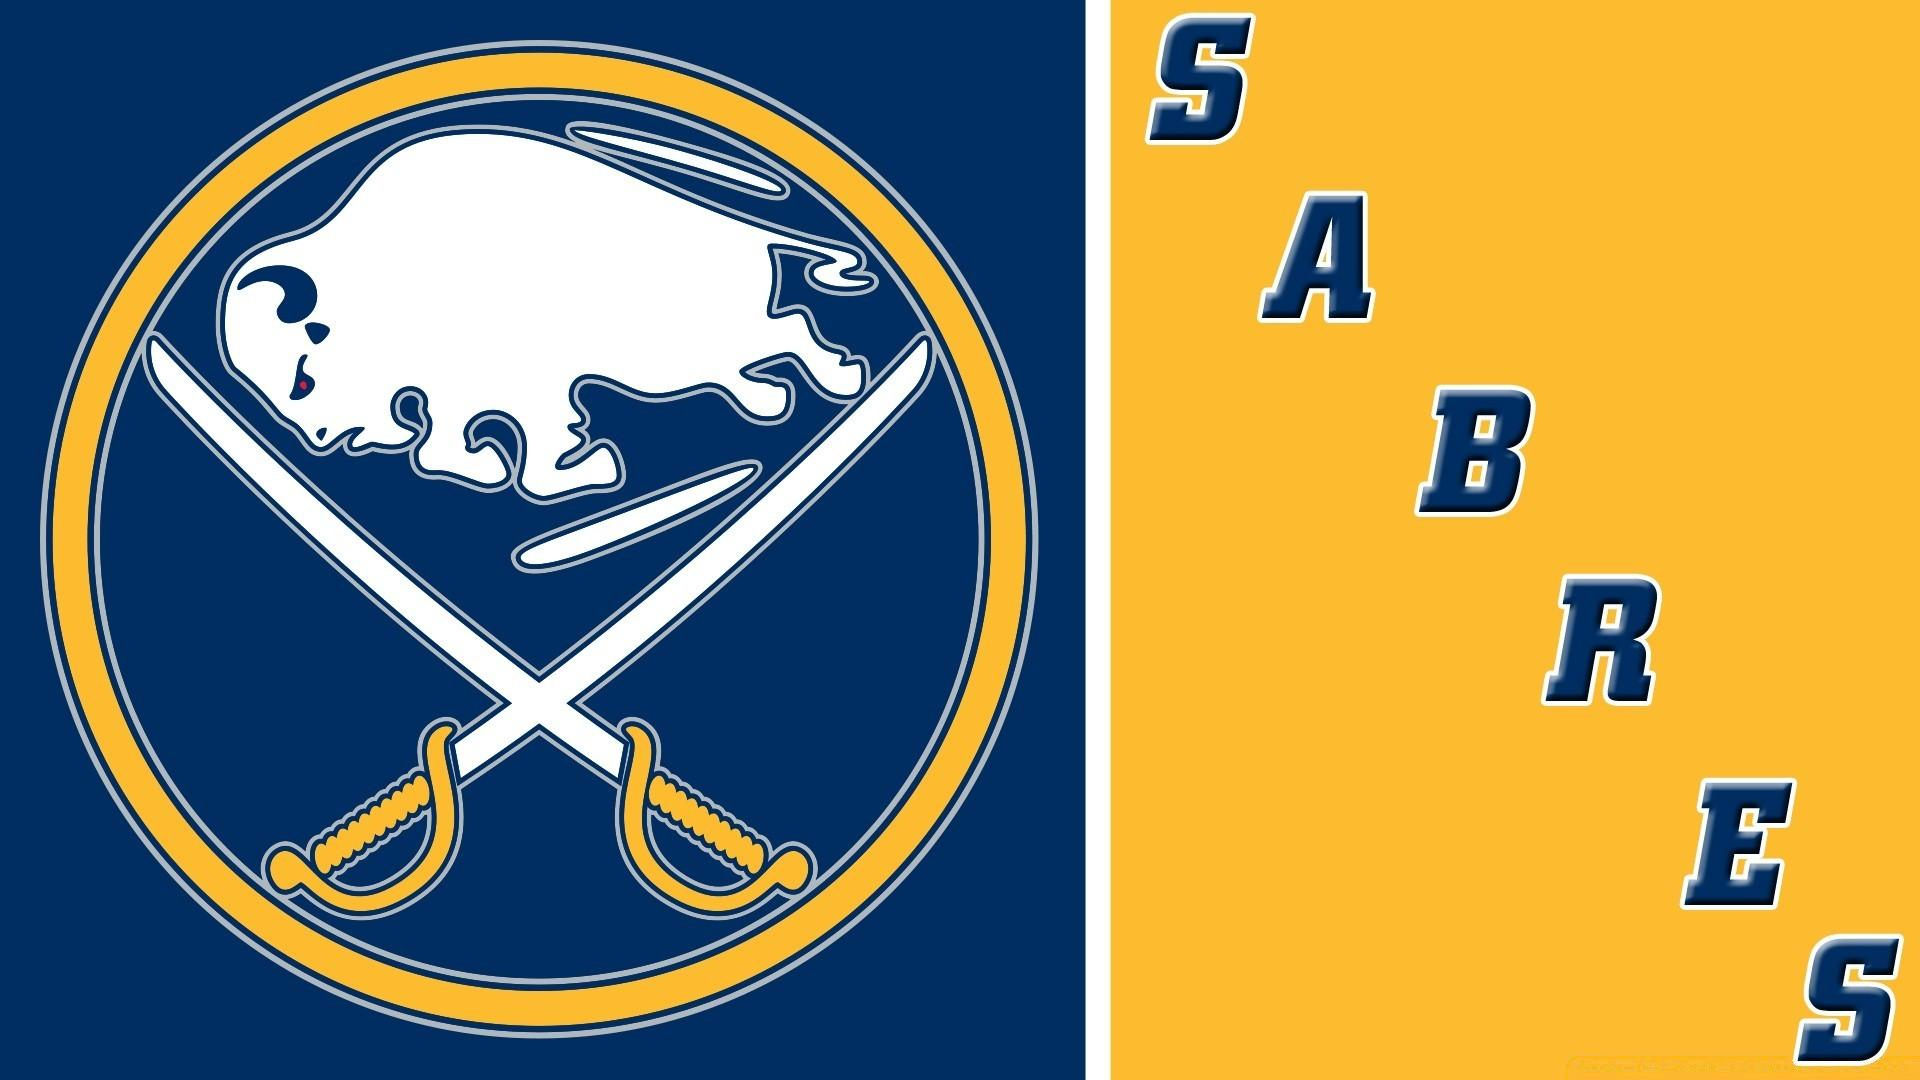 Buffalo Sabres. iPhone wallpapers for free